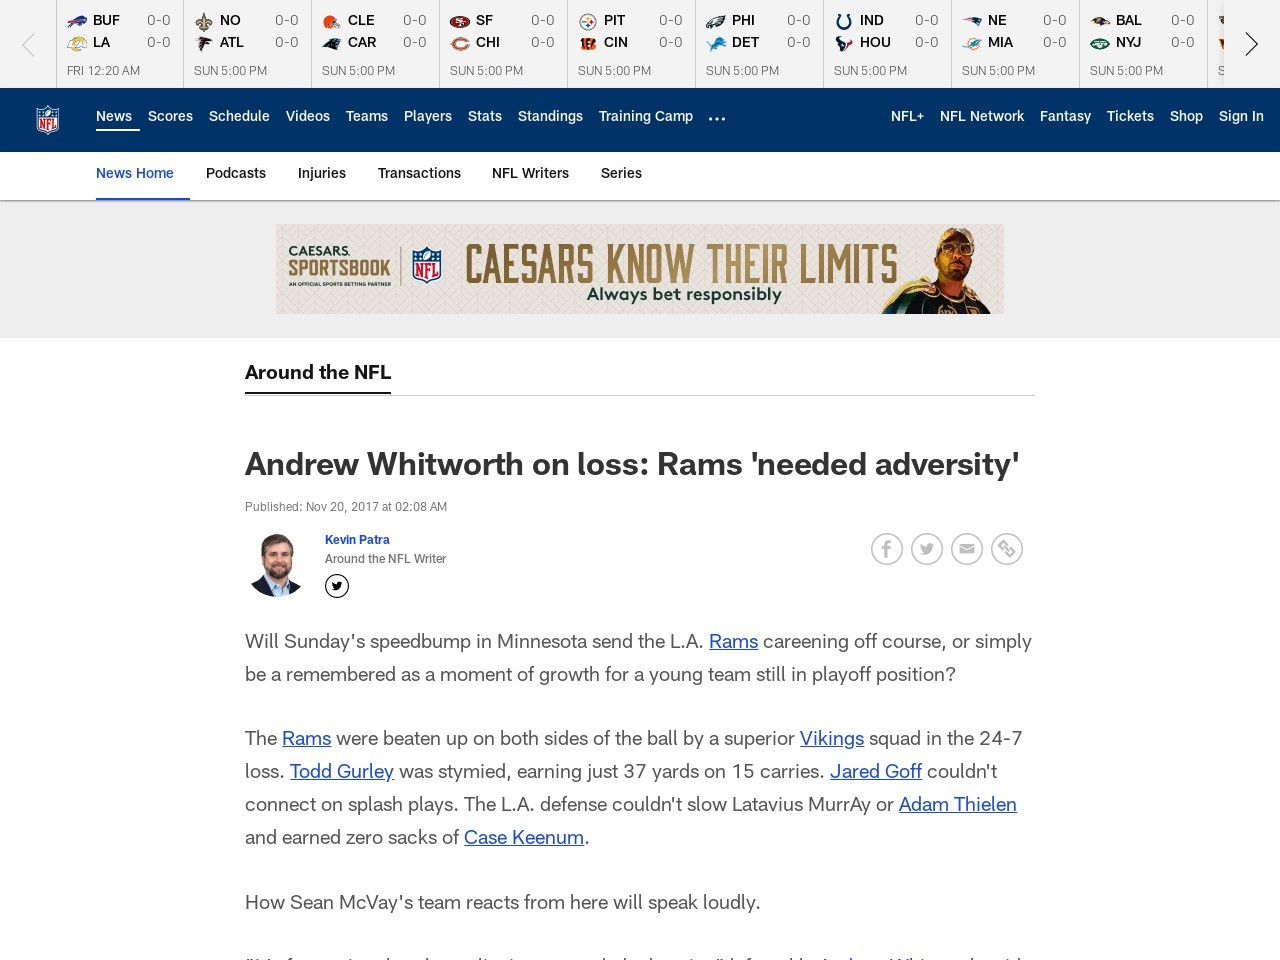 Andrew Whitworth on loss: Rams 'needed adversity'